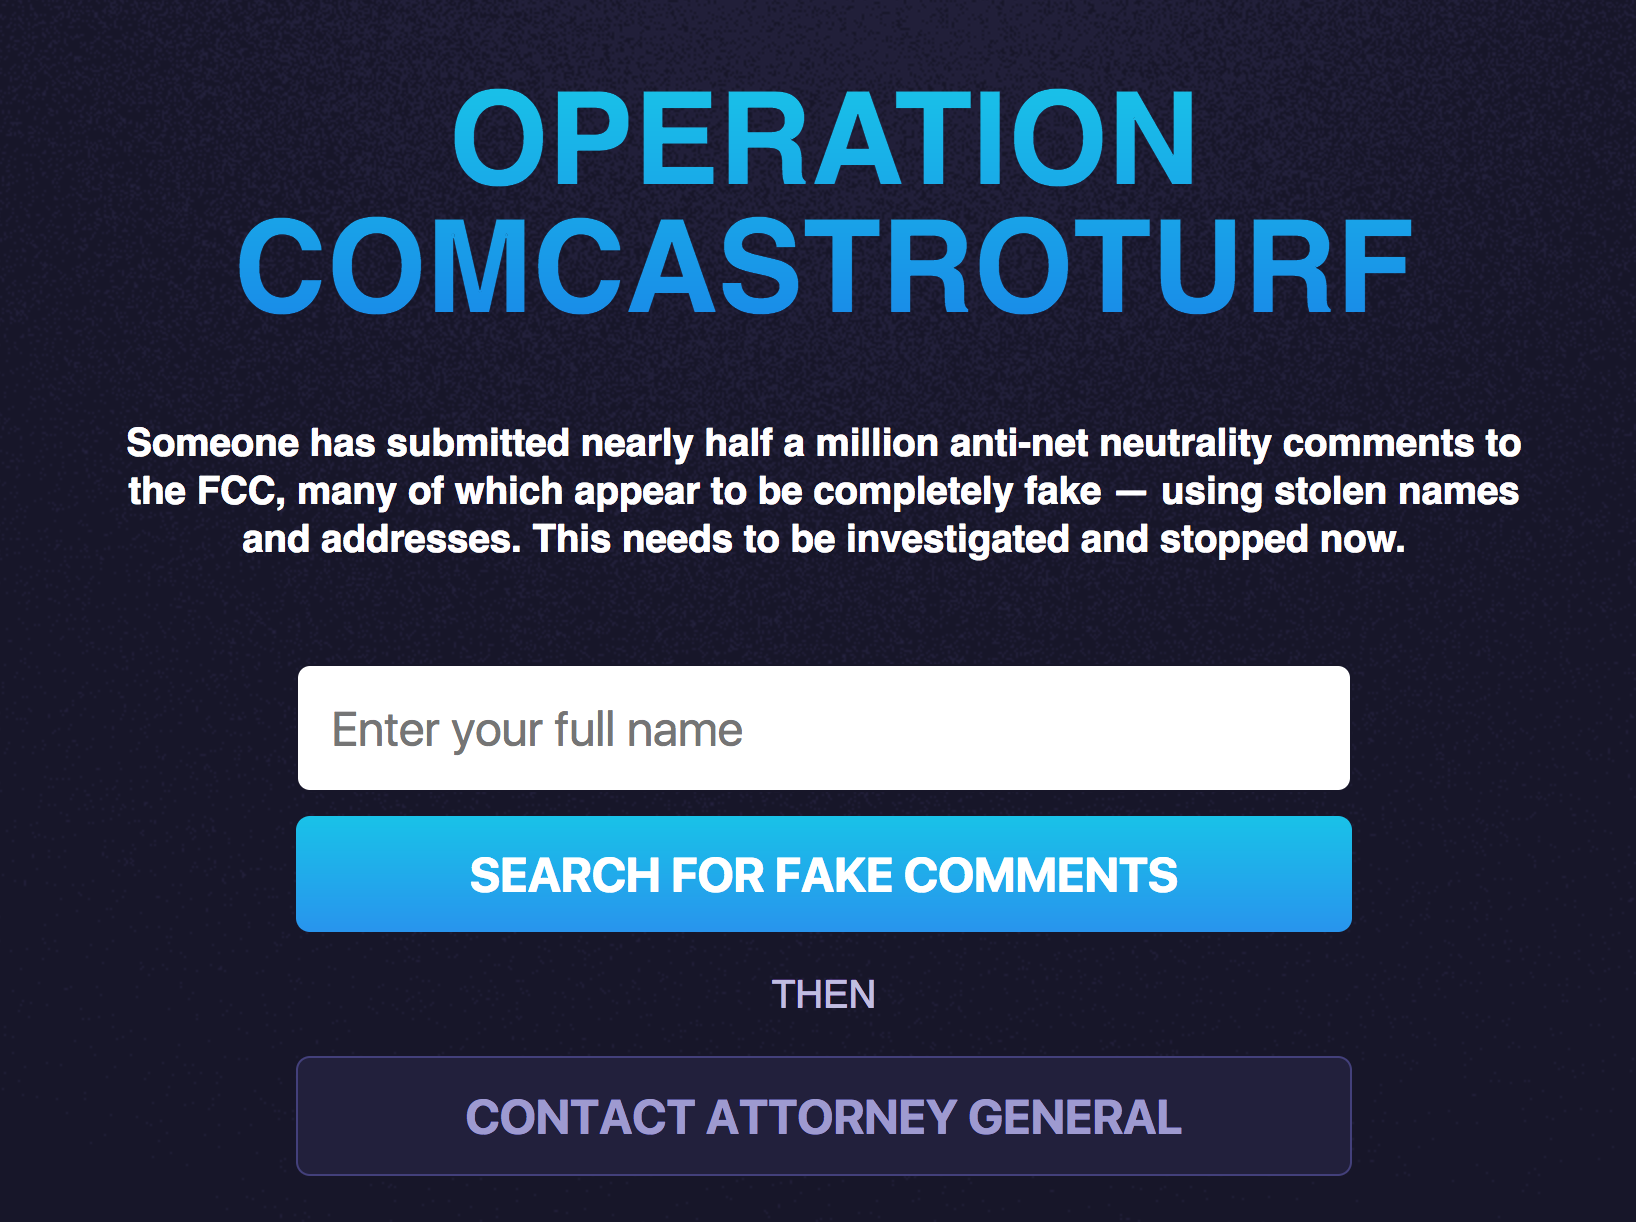 Comcast accused of siccing lawyers on net neutrality foe